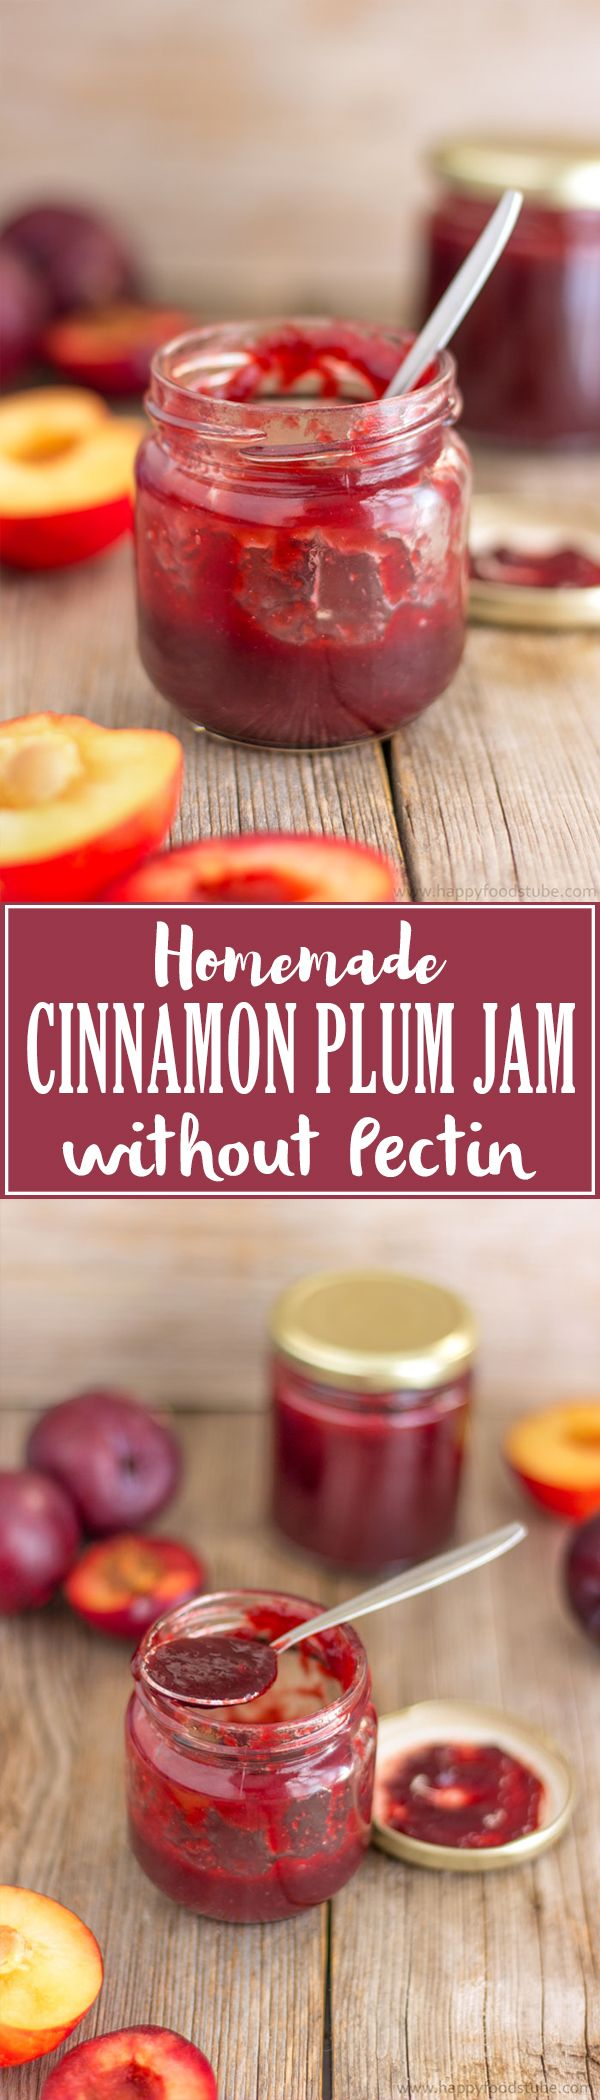 Homemade Low Sugar Cinnamon Plum Jam. Super Easy and Healthy Jam Recipe Without Pectin. Only 3 Ingredients! | happyfoodstube.com